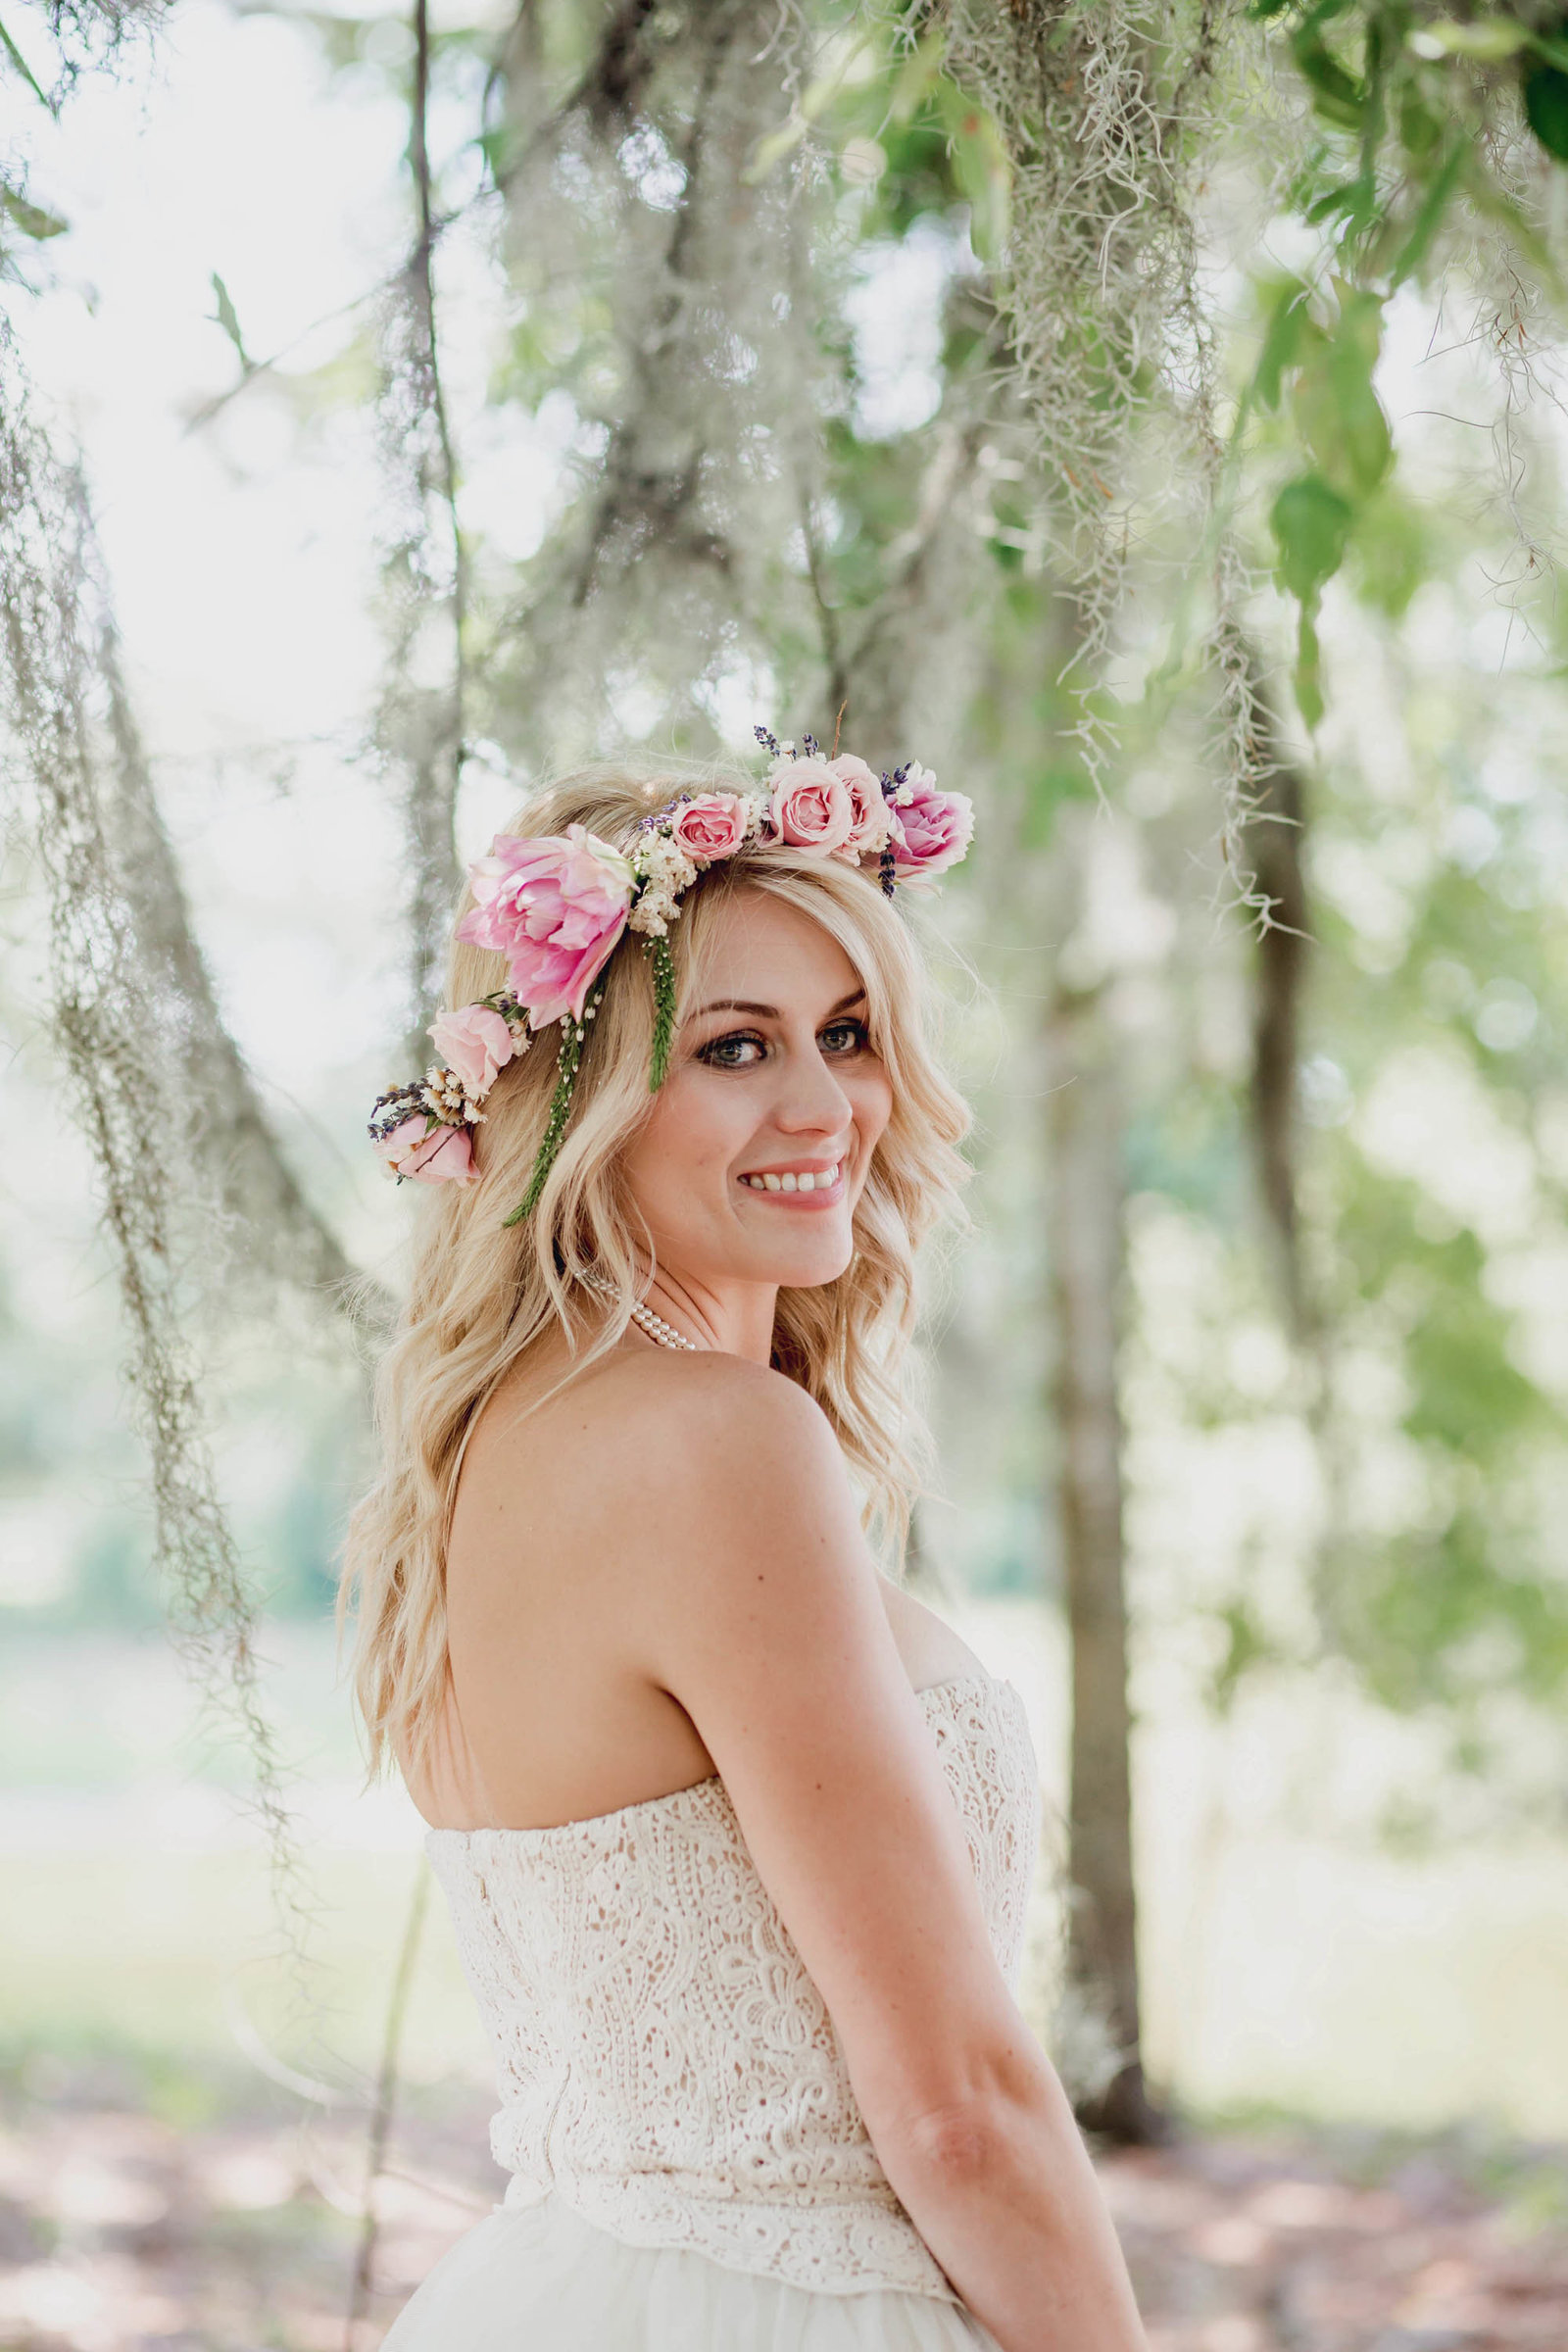 flower-wreath-hair-crown-spring-lookbook-pepper-plantation-black-white-blush-makeup-kate-timbers-photography112